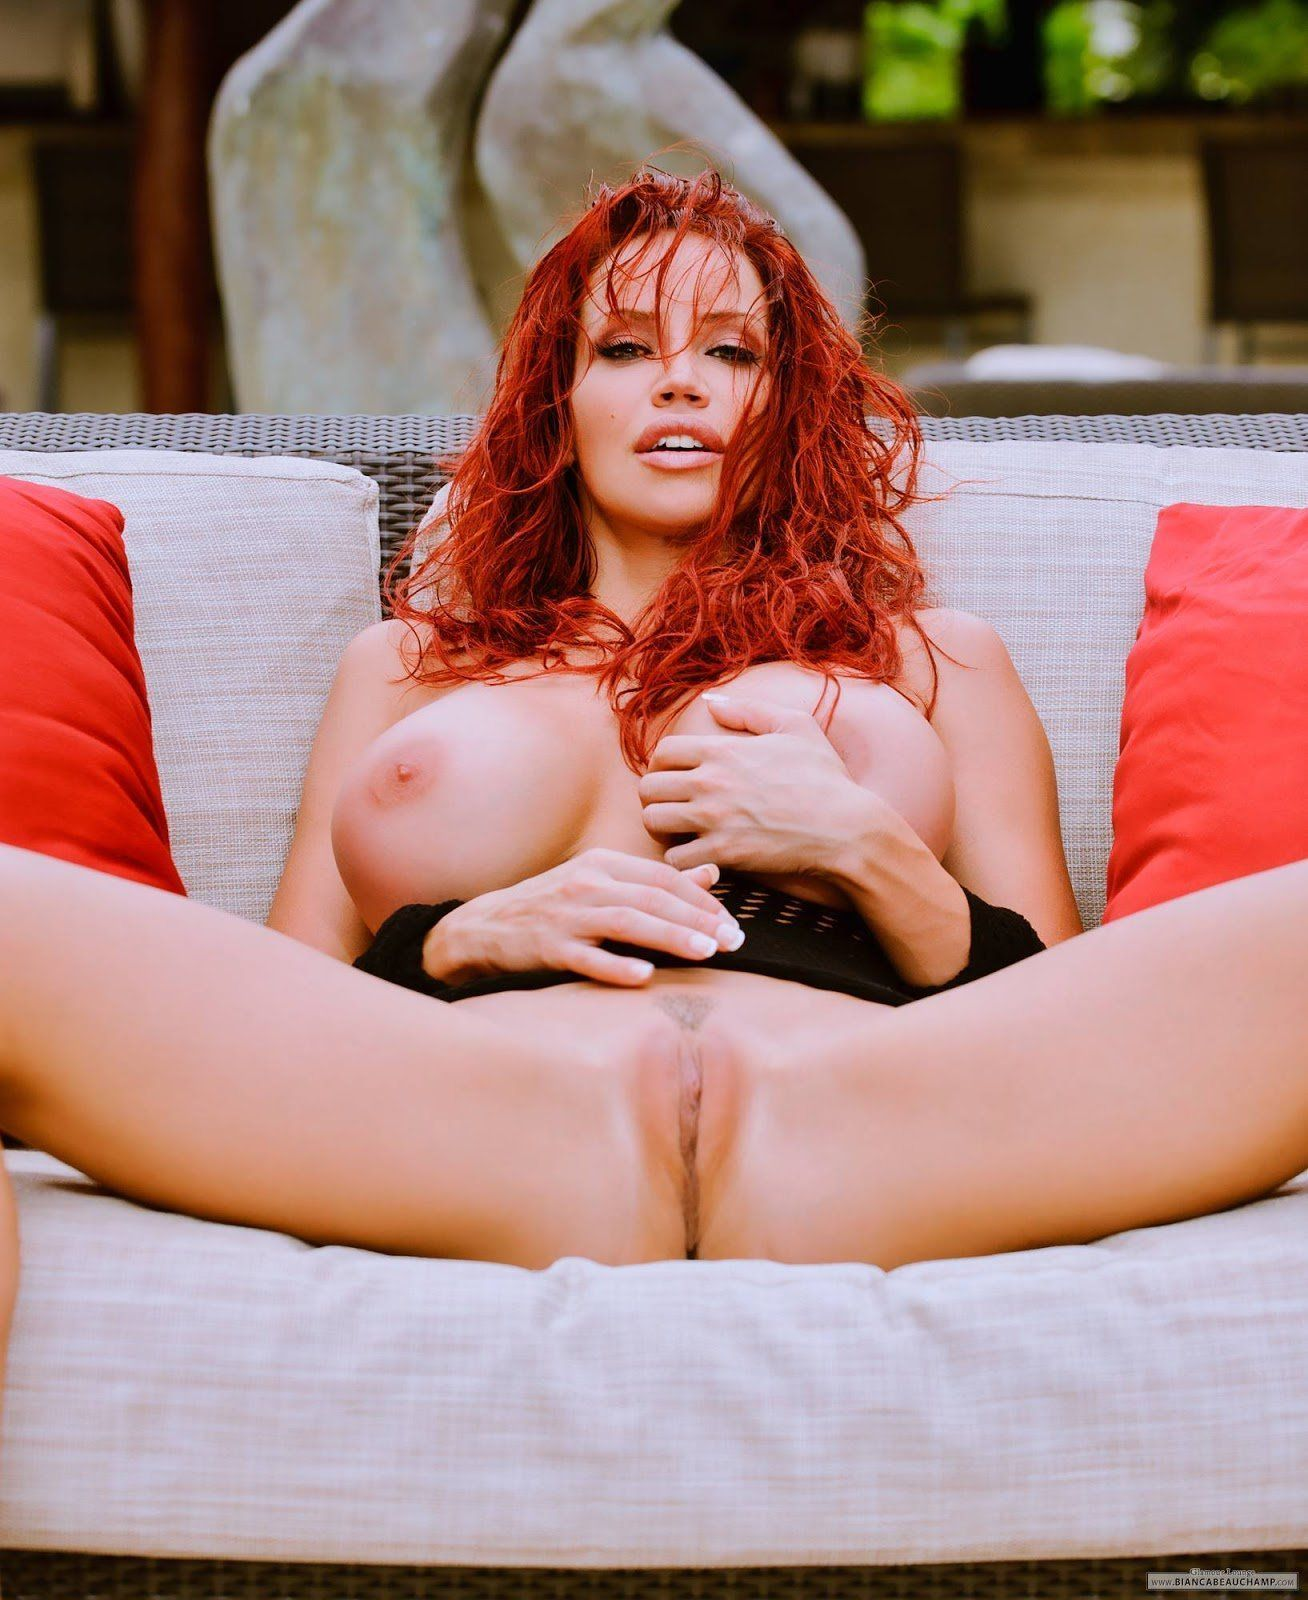 Bianca beauchamp wet and naked congratulate